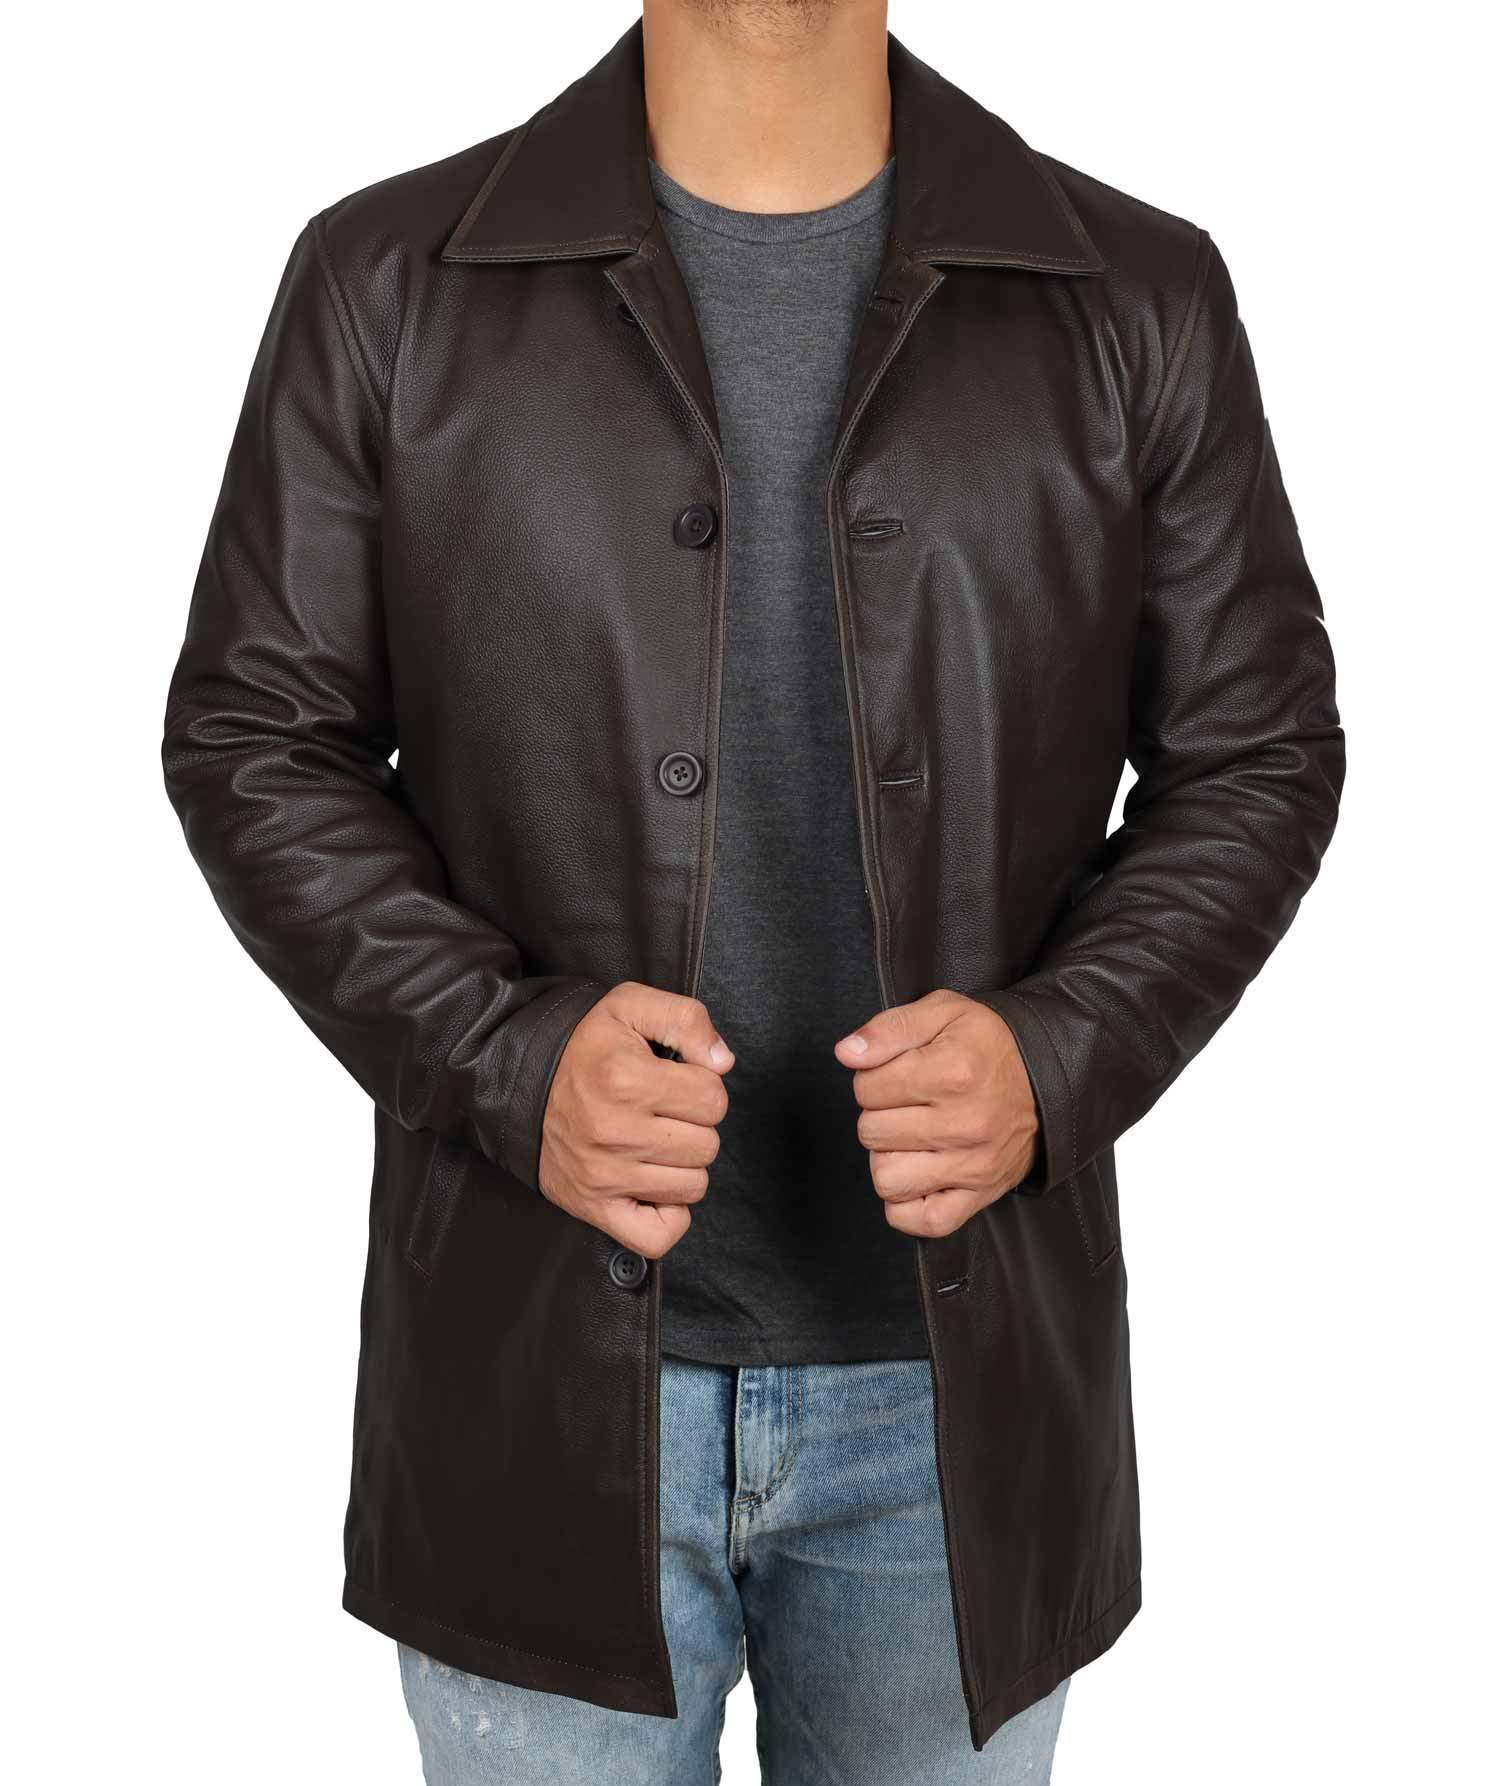 Decrum Distressed Brown Leather Jacket Mens - Lambskin Leather Jackets | [1500032] Super Rub, S by Decrum